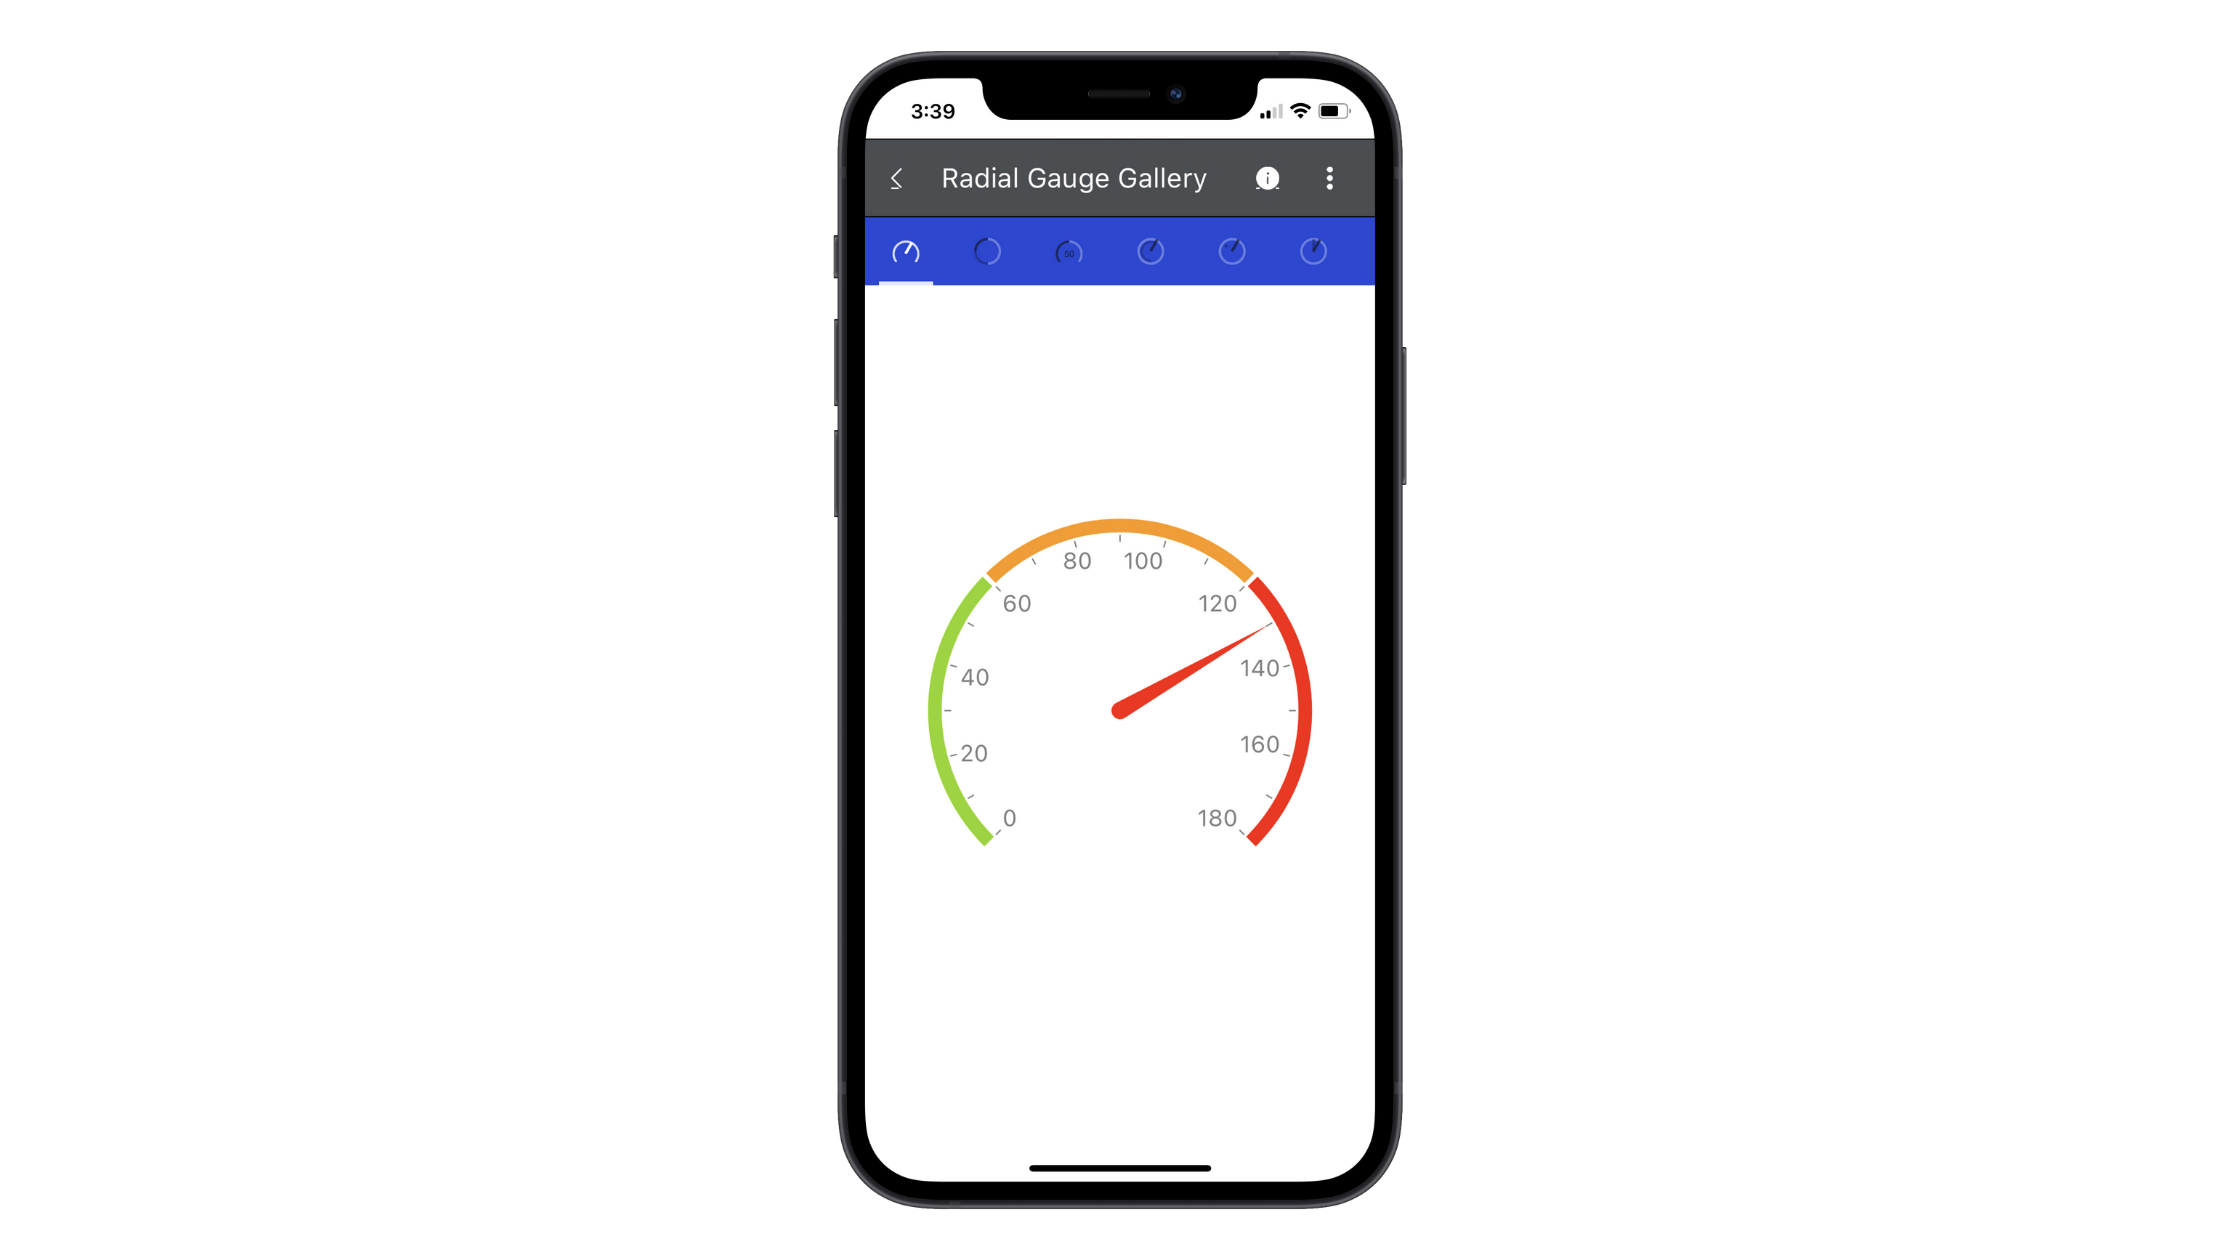 An example radial gauge component from Telerik UI for Xamarin. The gauge's dial points to 130.